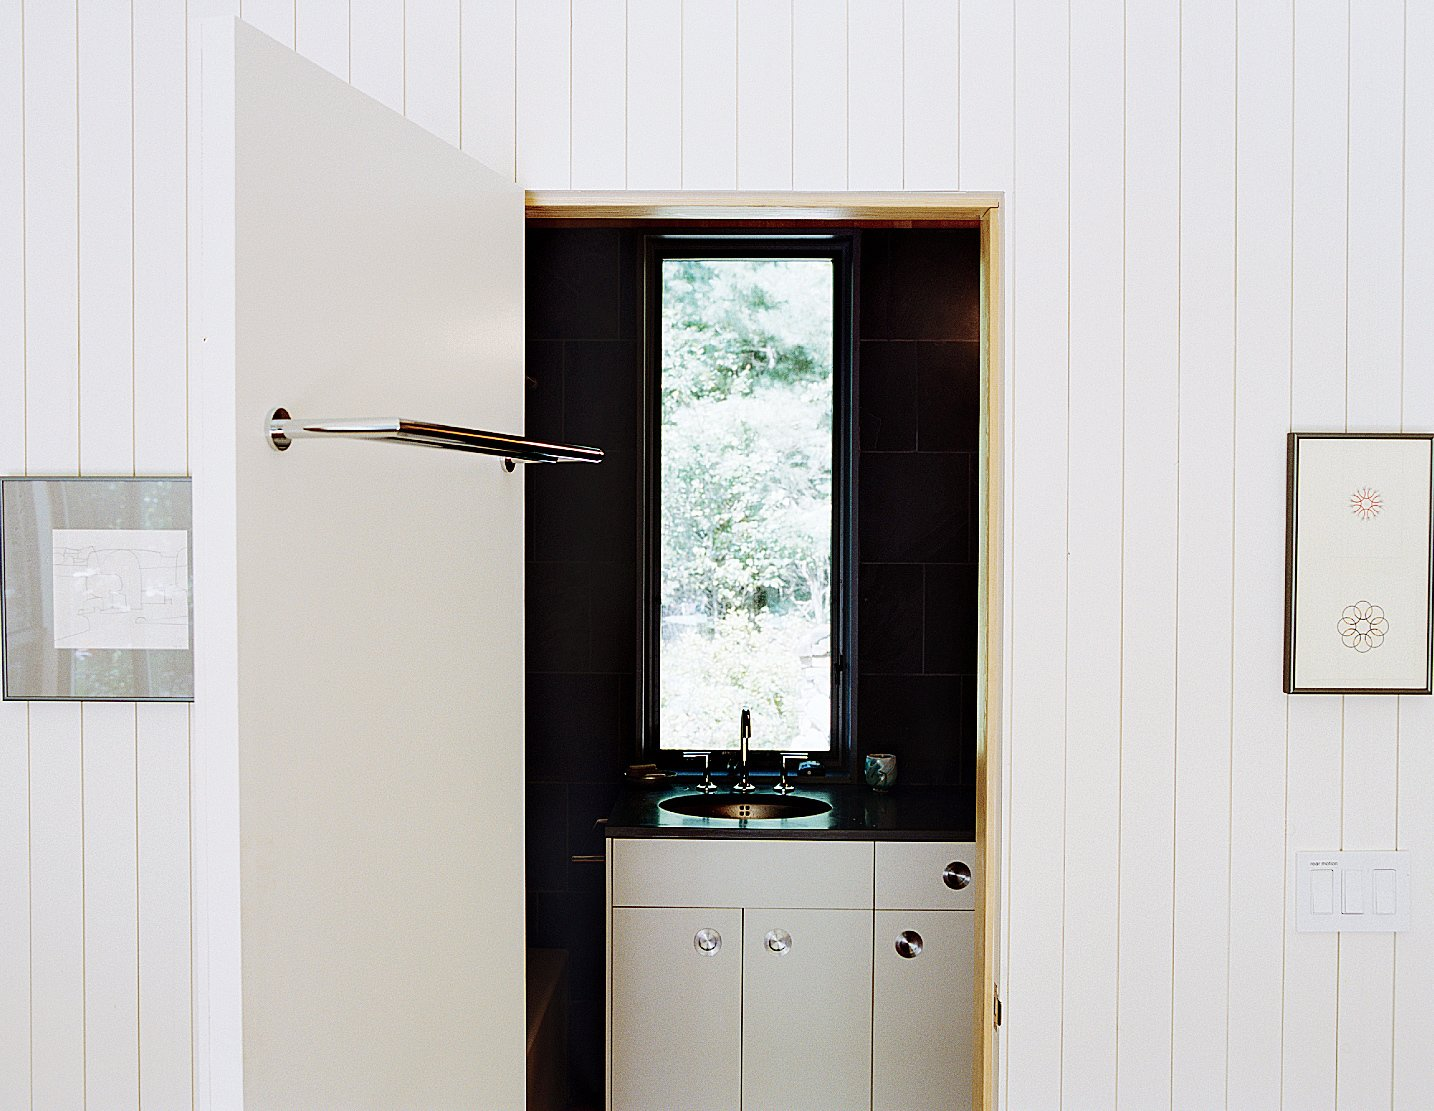 Bath Room The bathroom is outfitted with a Kohler sink, black tile, and a countertop from Williams & Sons Slate & Tile.  Photo 6 of 12 in This Tiny New England Cottage Is a No-Frills Weekend Hideaway